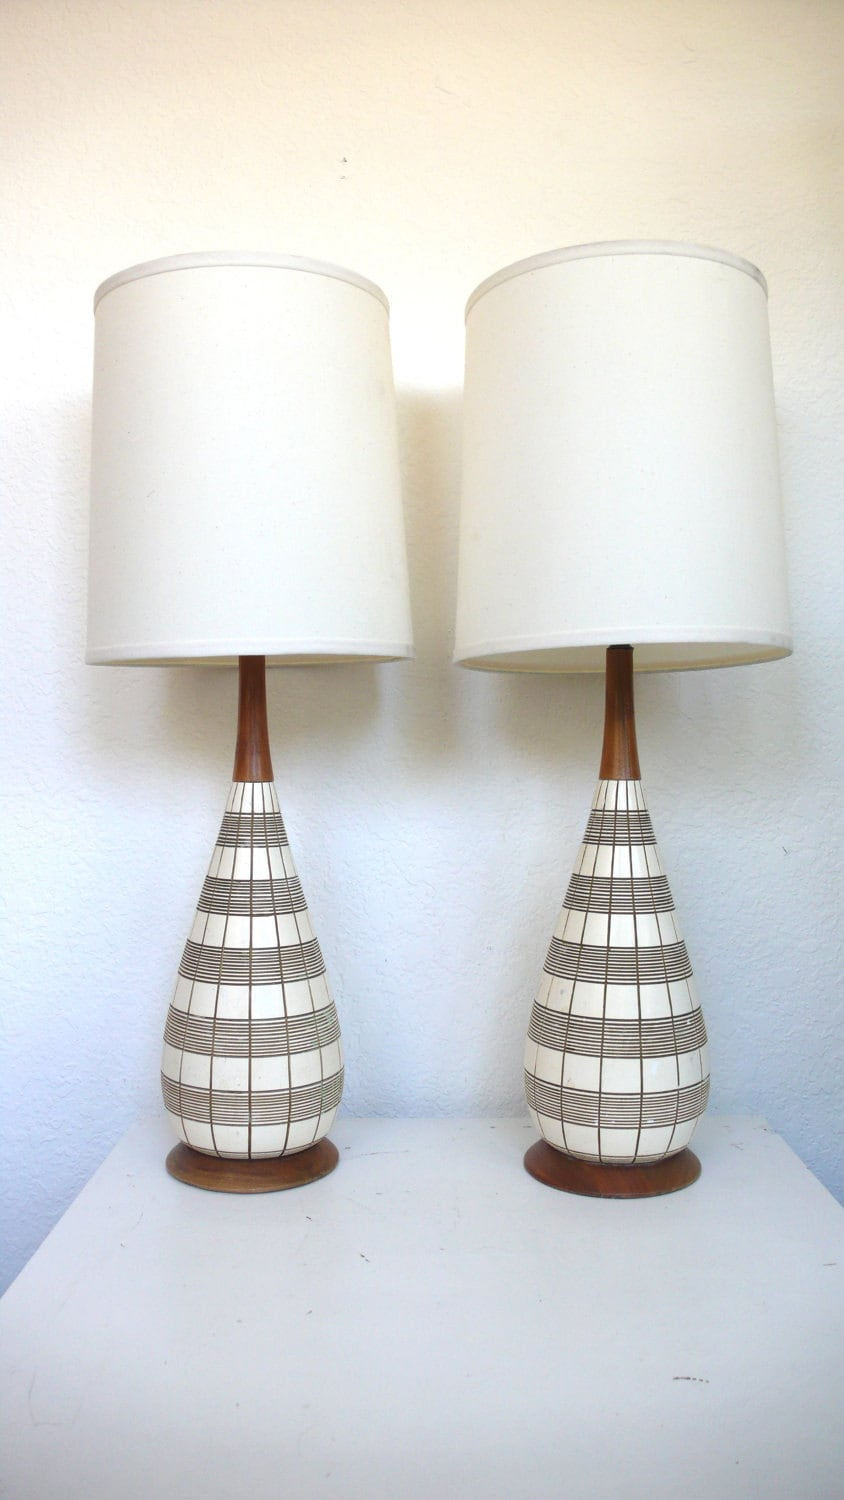 Pair of mid century modern lamps reserved for mwesthoven - Contemporary table lamps design ideas ...